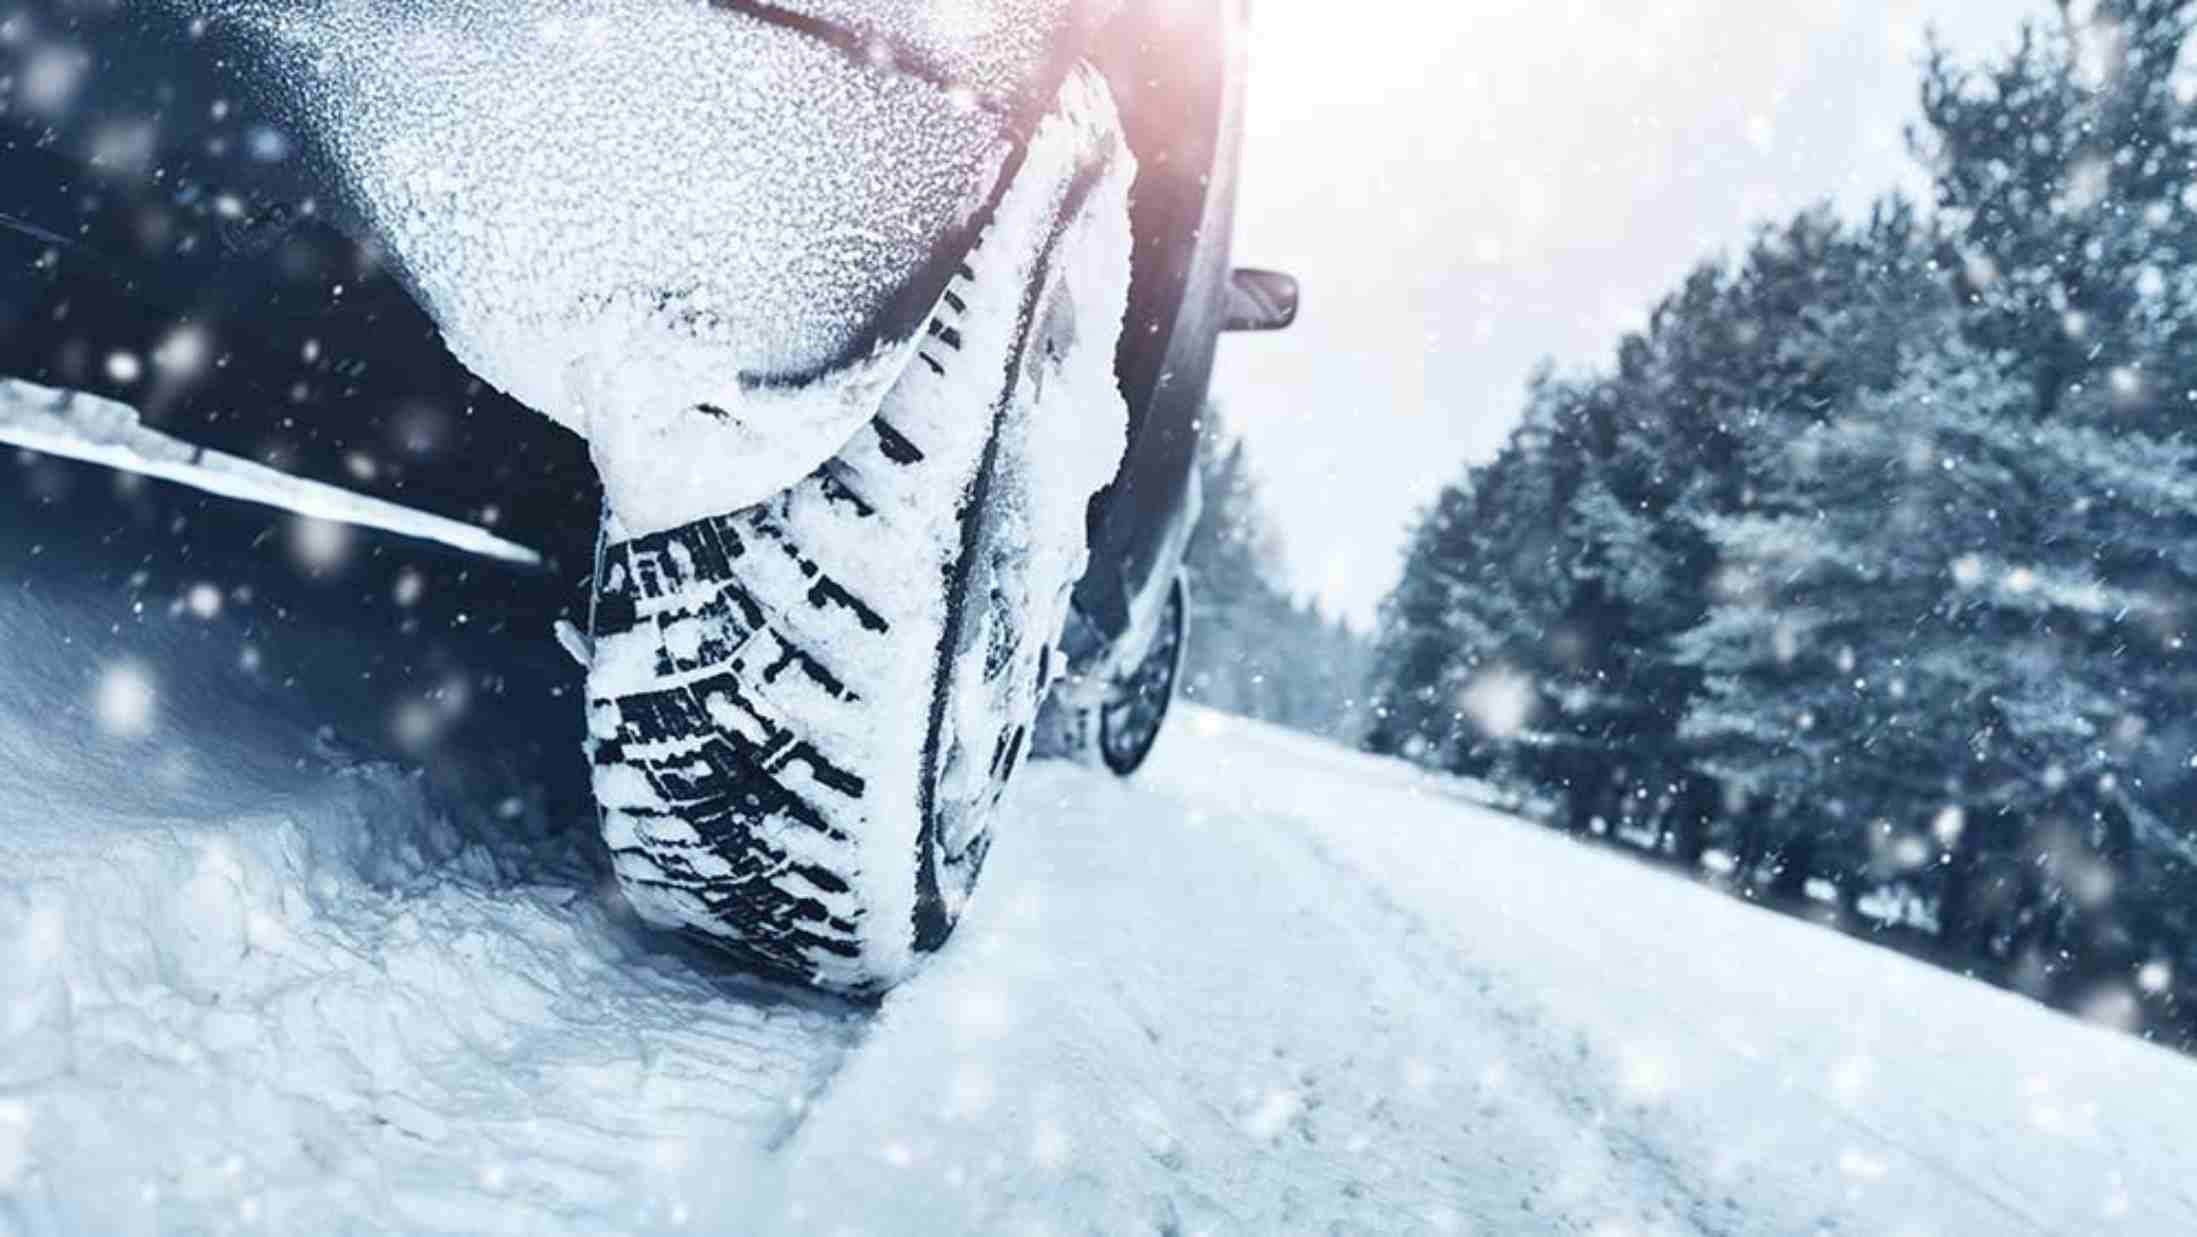 Close up of a car tyre on a road covered in snow